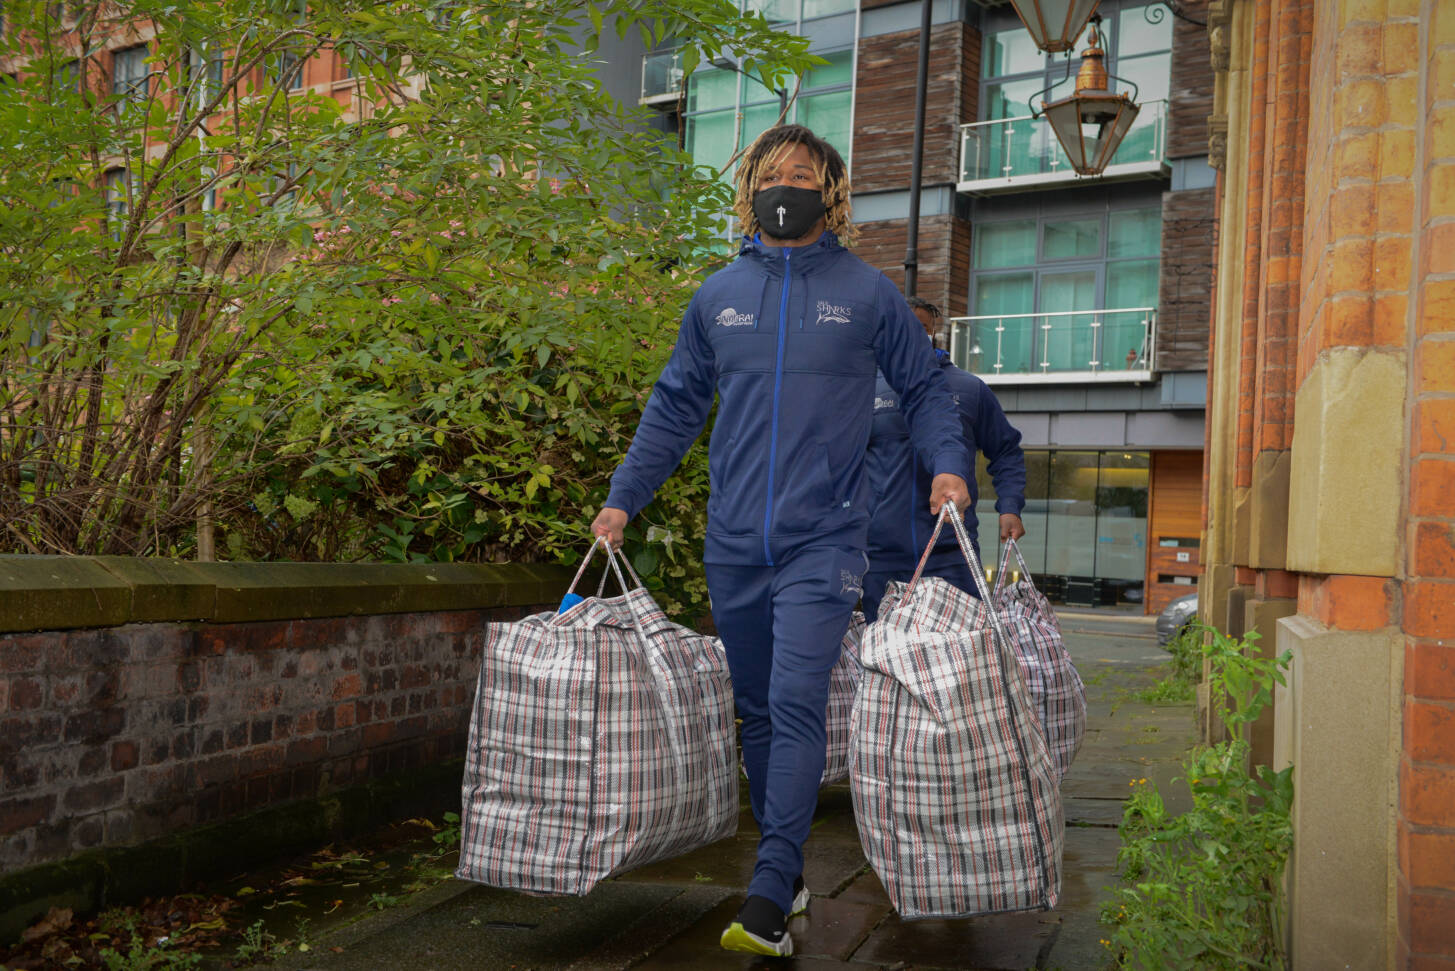 Marland Yarde teams up with Centrepoint to help the homeless